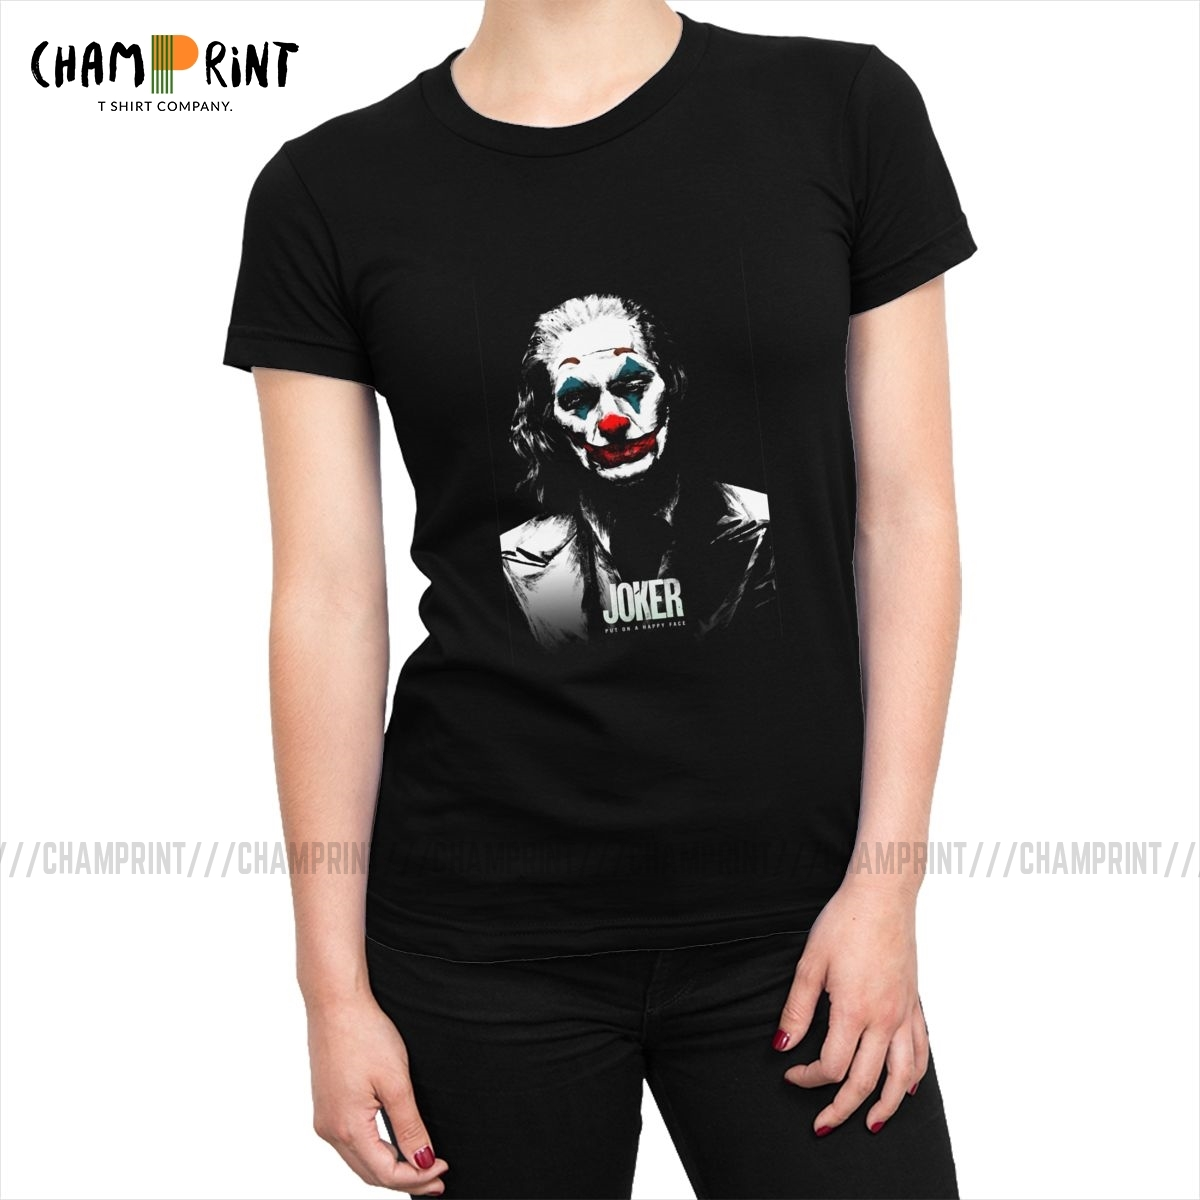 Joker <font><b>Tee</b></font> Shirt Tops Joaquin Phoenix <font><b>2019</b></font> Movie <font><b>Women</b></font> T-shirt Arthur Fleck Clown Fashion Tshirt Hip Hop <font><b>Graphic</b></font> Clothing Female image